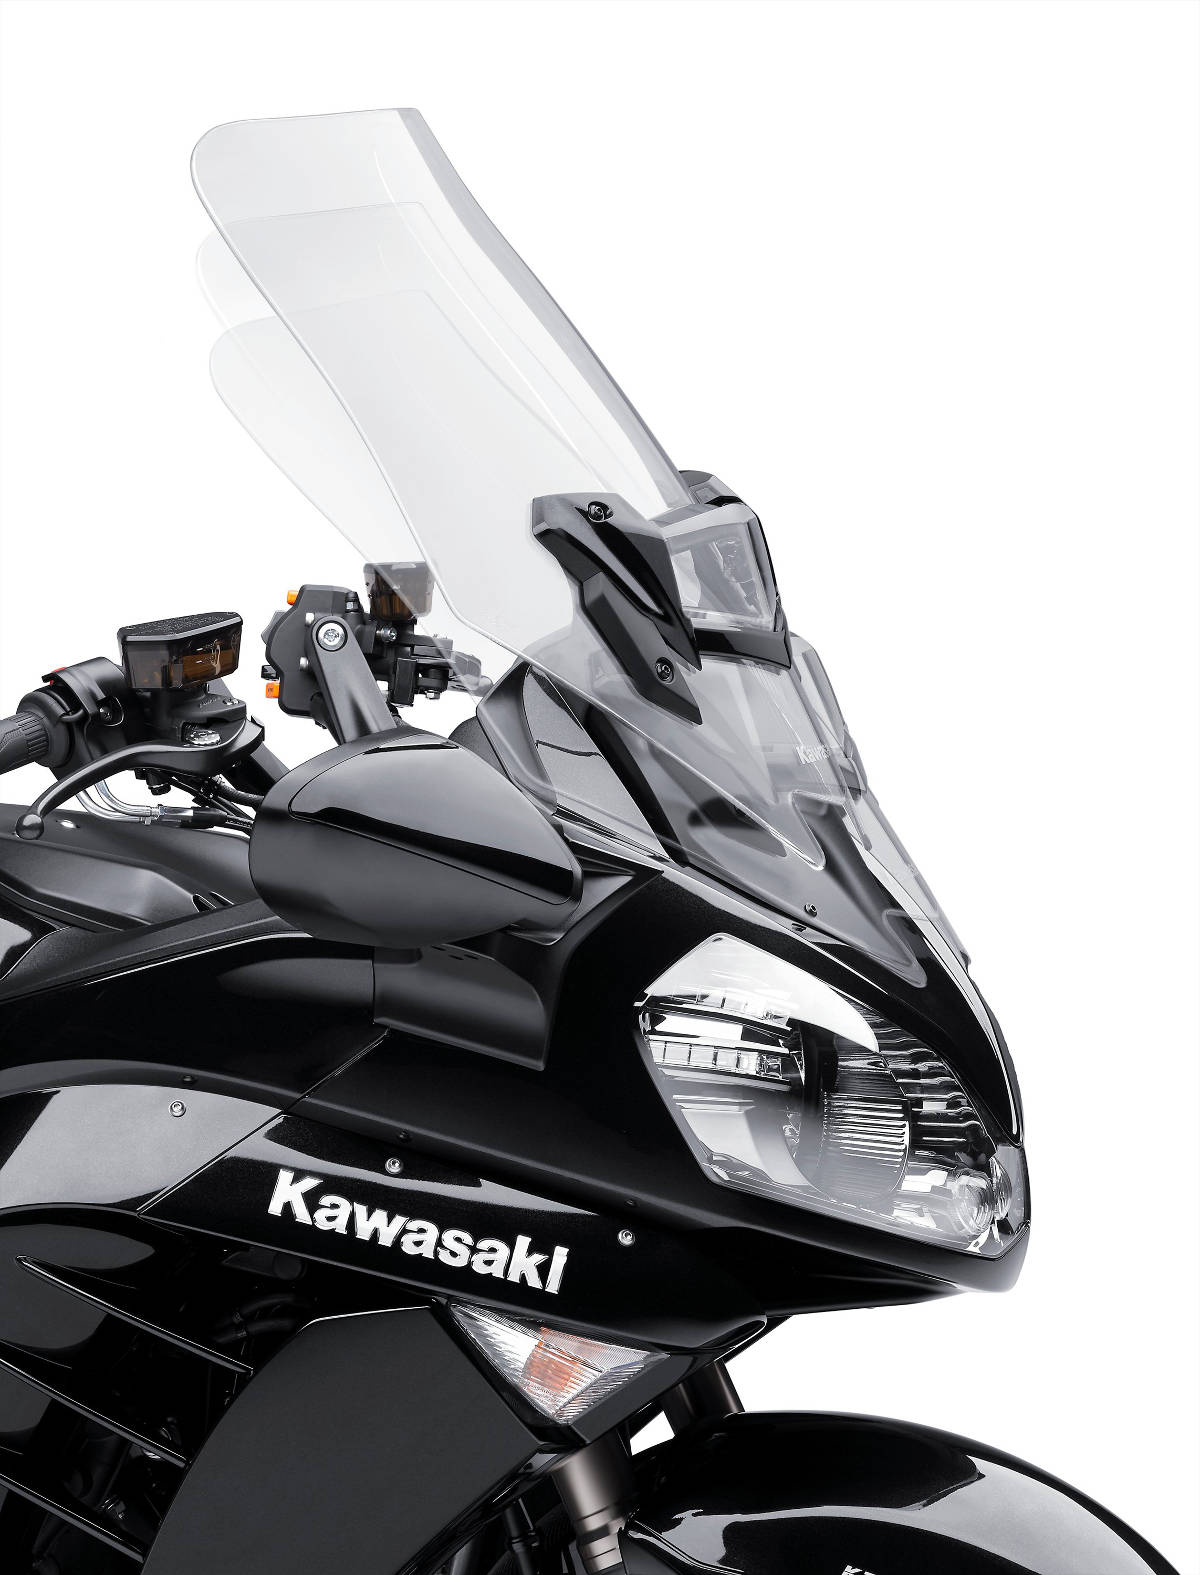 Kawasaki Refines Concours 14 ABS for 2015 - MotorcycleDaily com